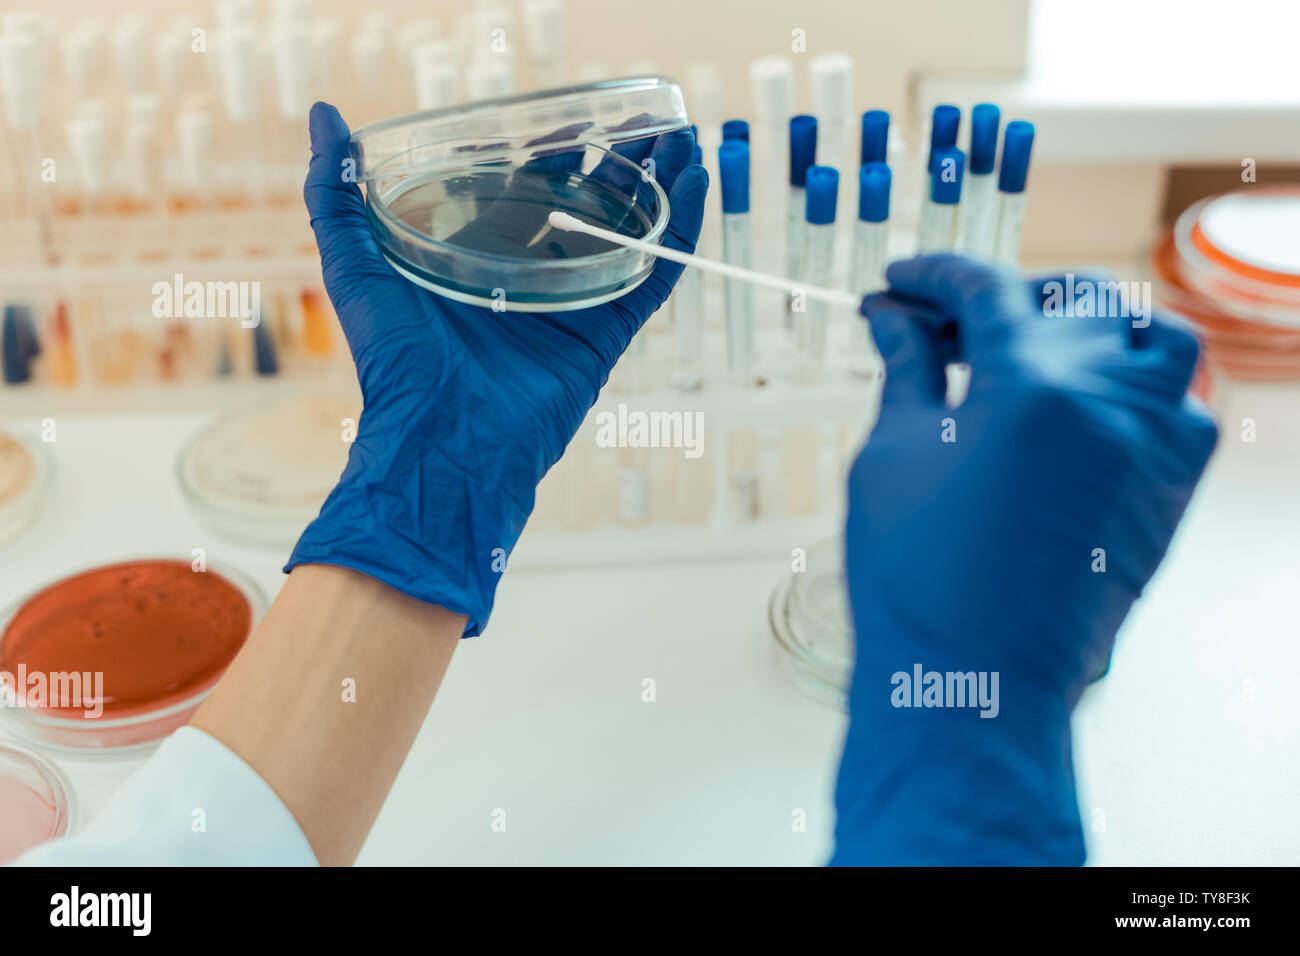 Close up of a petri dish in scientists hands - Stock Image